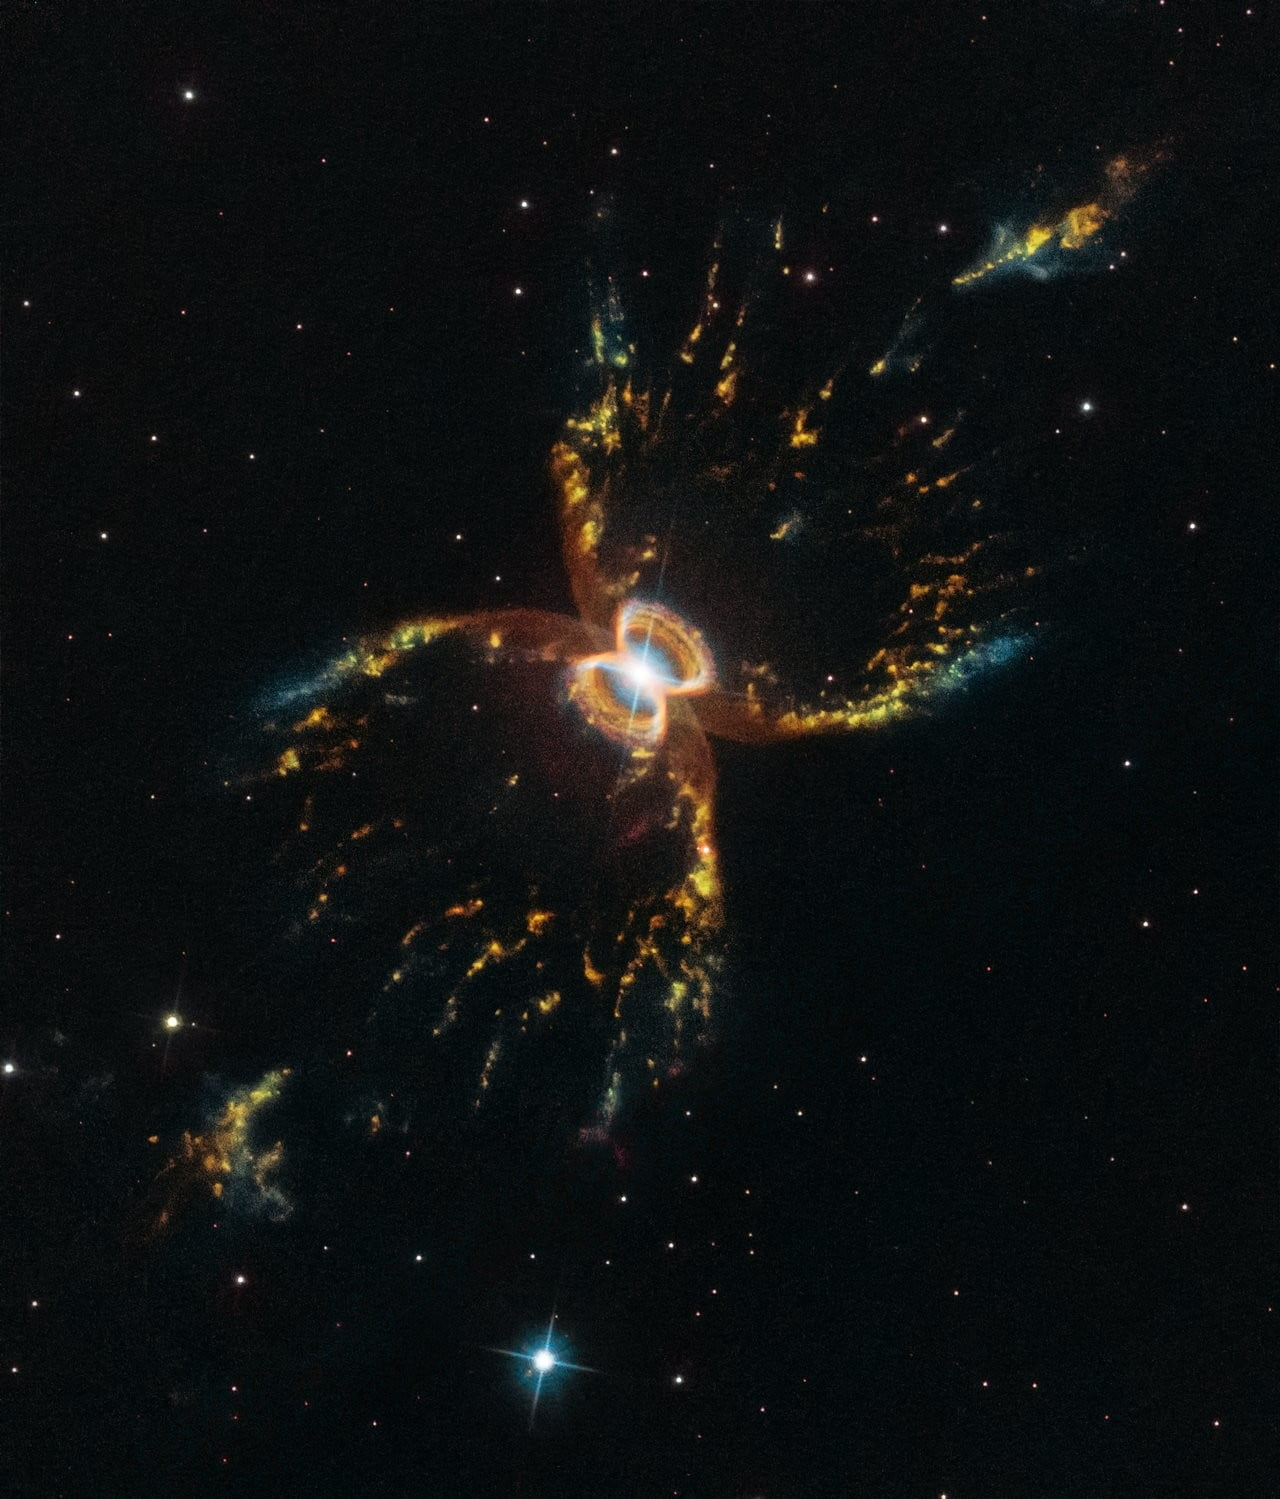 Happy birthday, Hubble! Telescope celebrates with image of Southern Crab Nebula